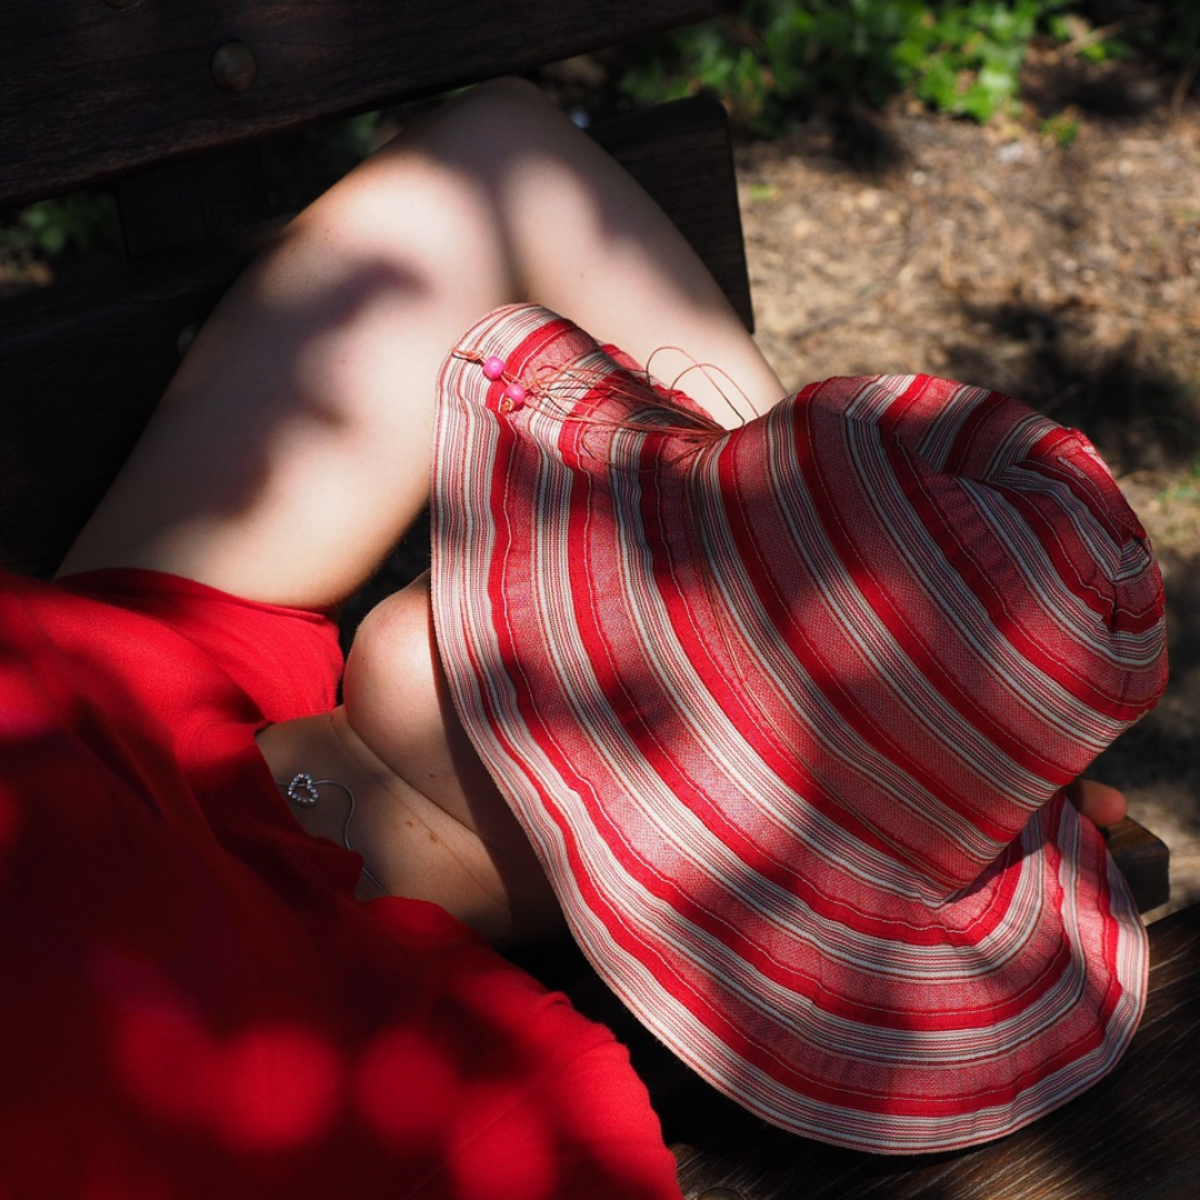 Naps help relax the brain, too.